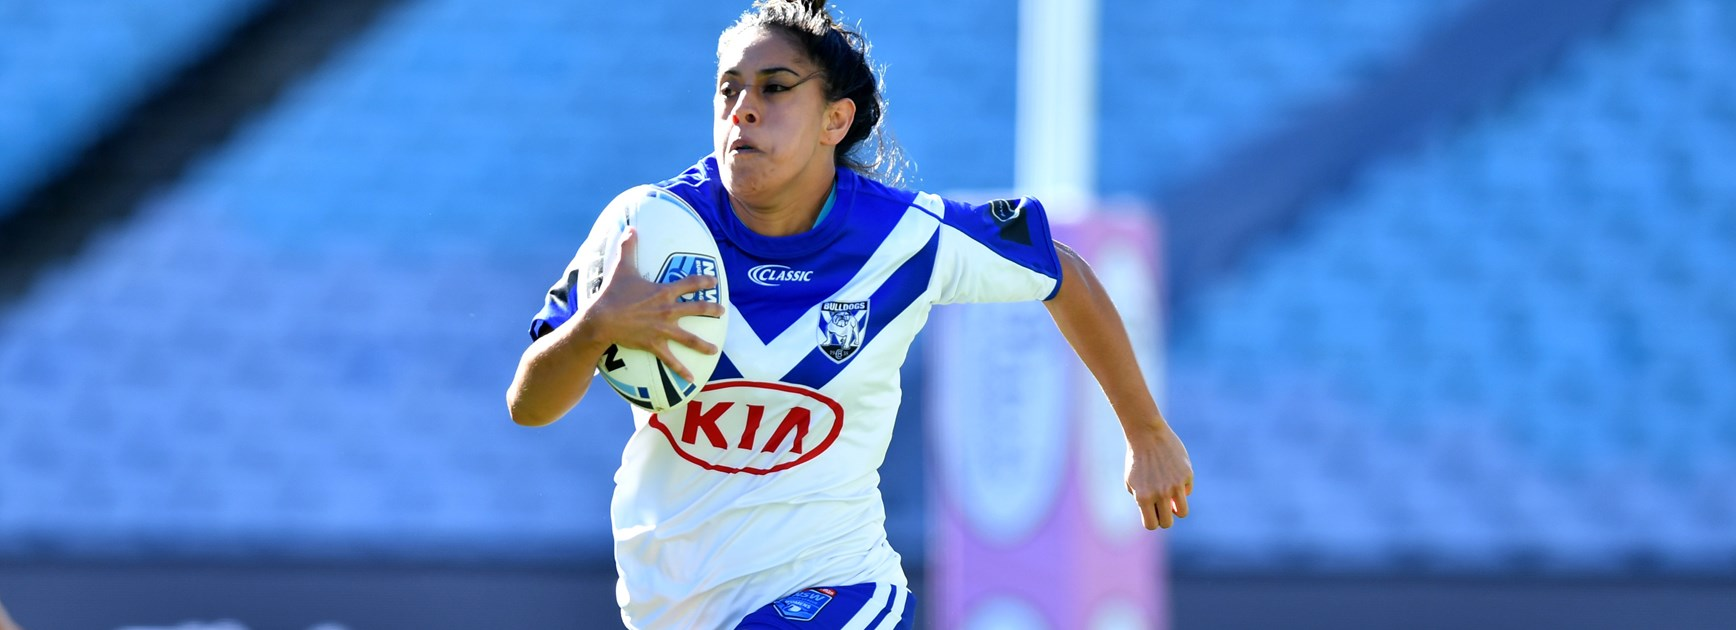 Round 15 Harvey Norman's Women Team News